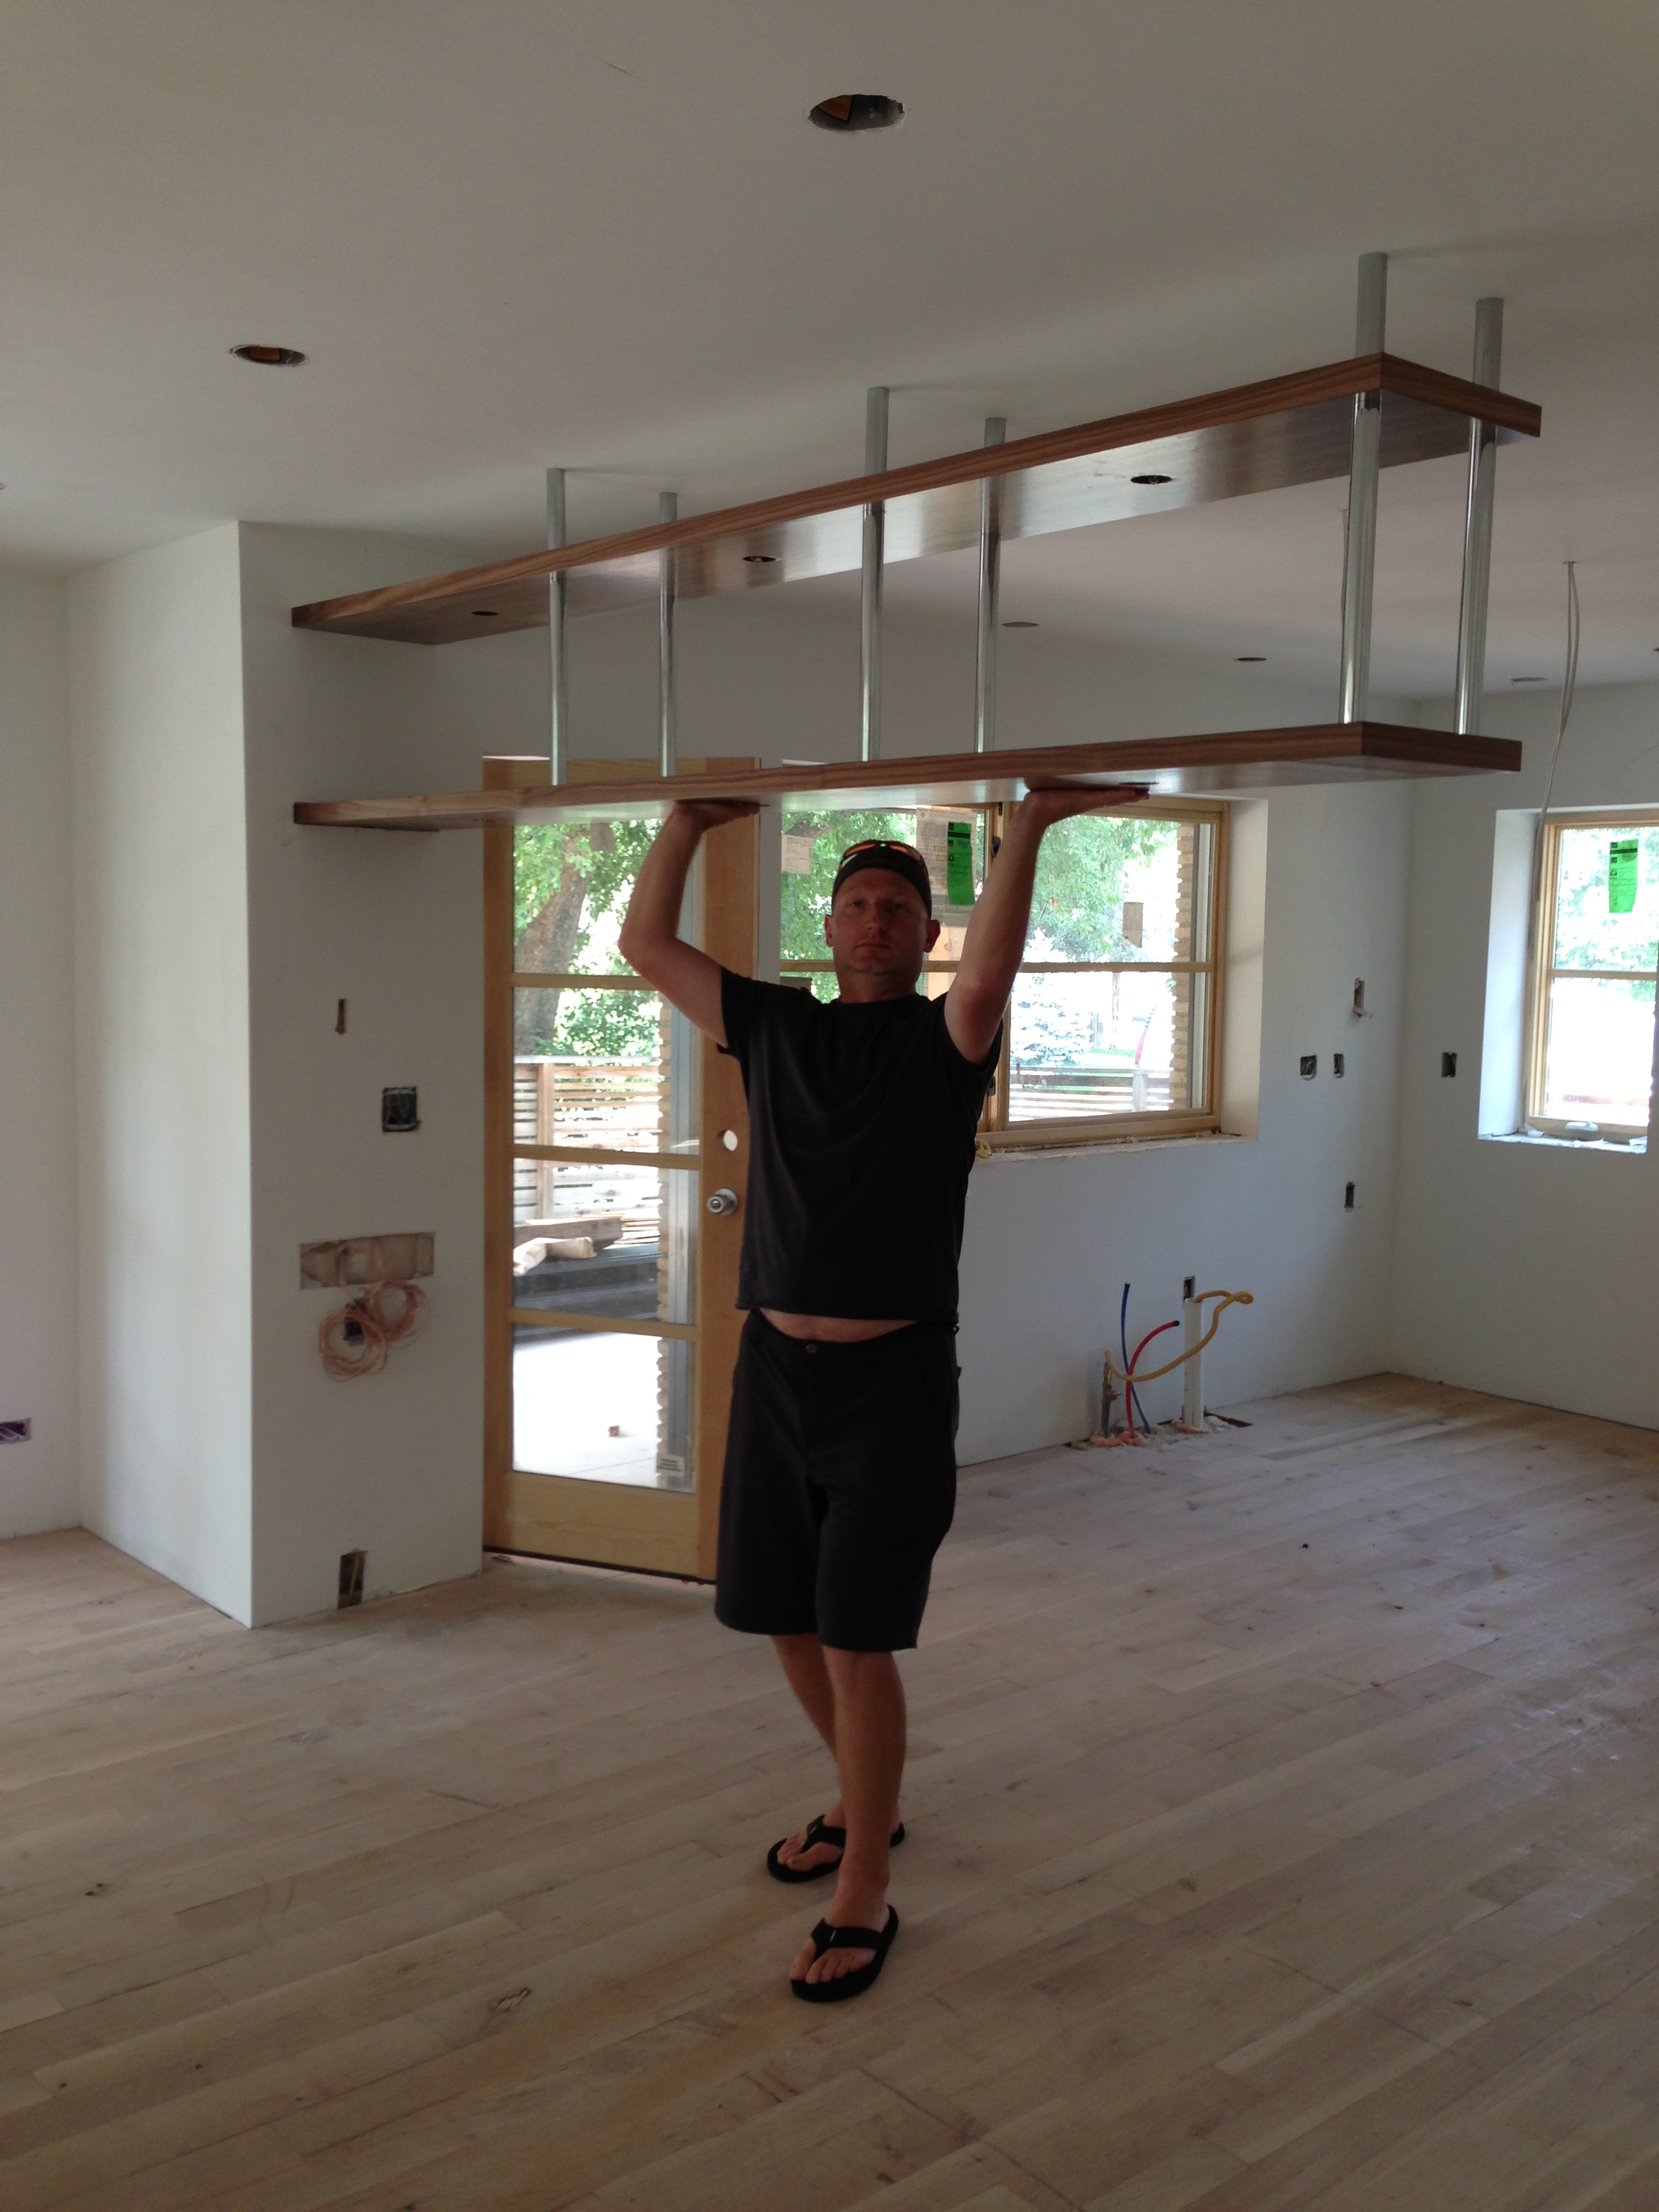 Kitchen Cabinet Hanging How To Hang Kitchen Cabinets From Ceiling Roselawnlutheran